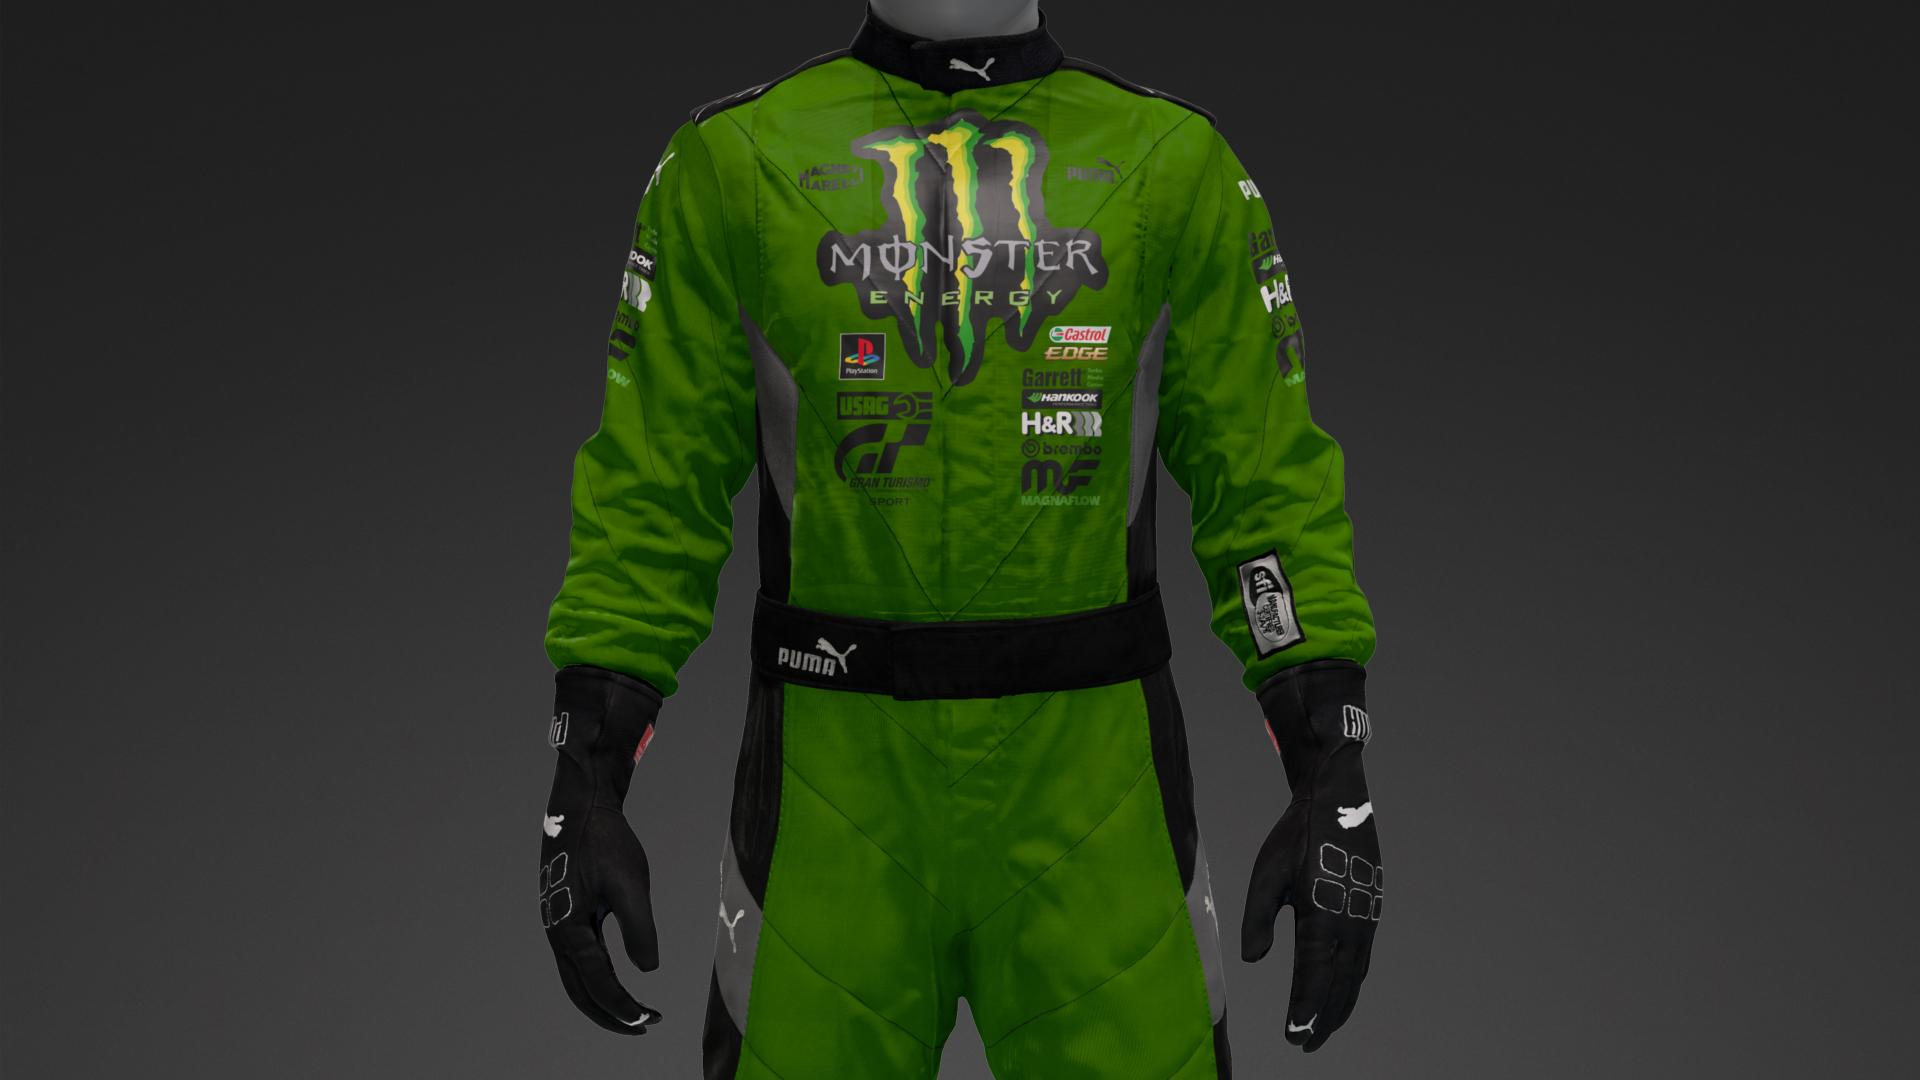 Puma Monster Suit Livery By Teosax82 Munity